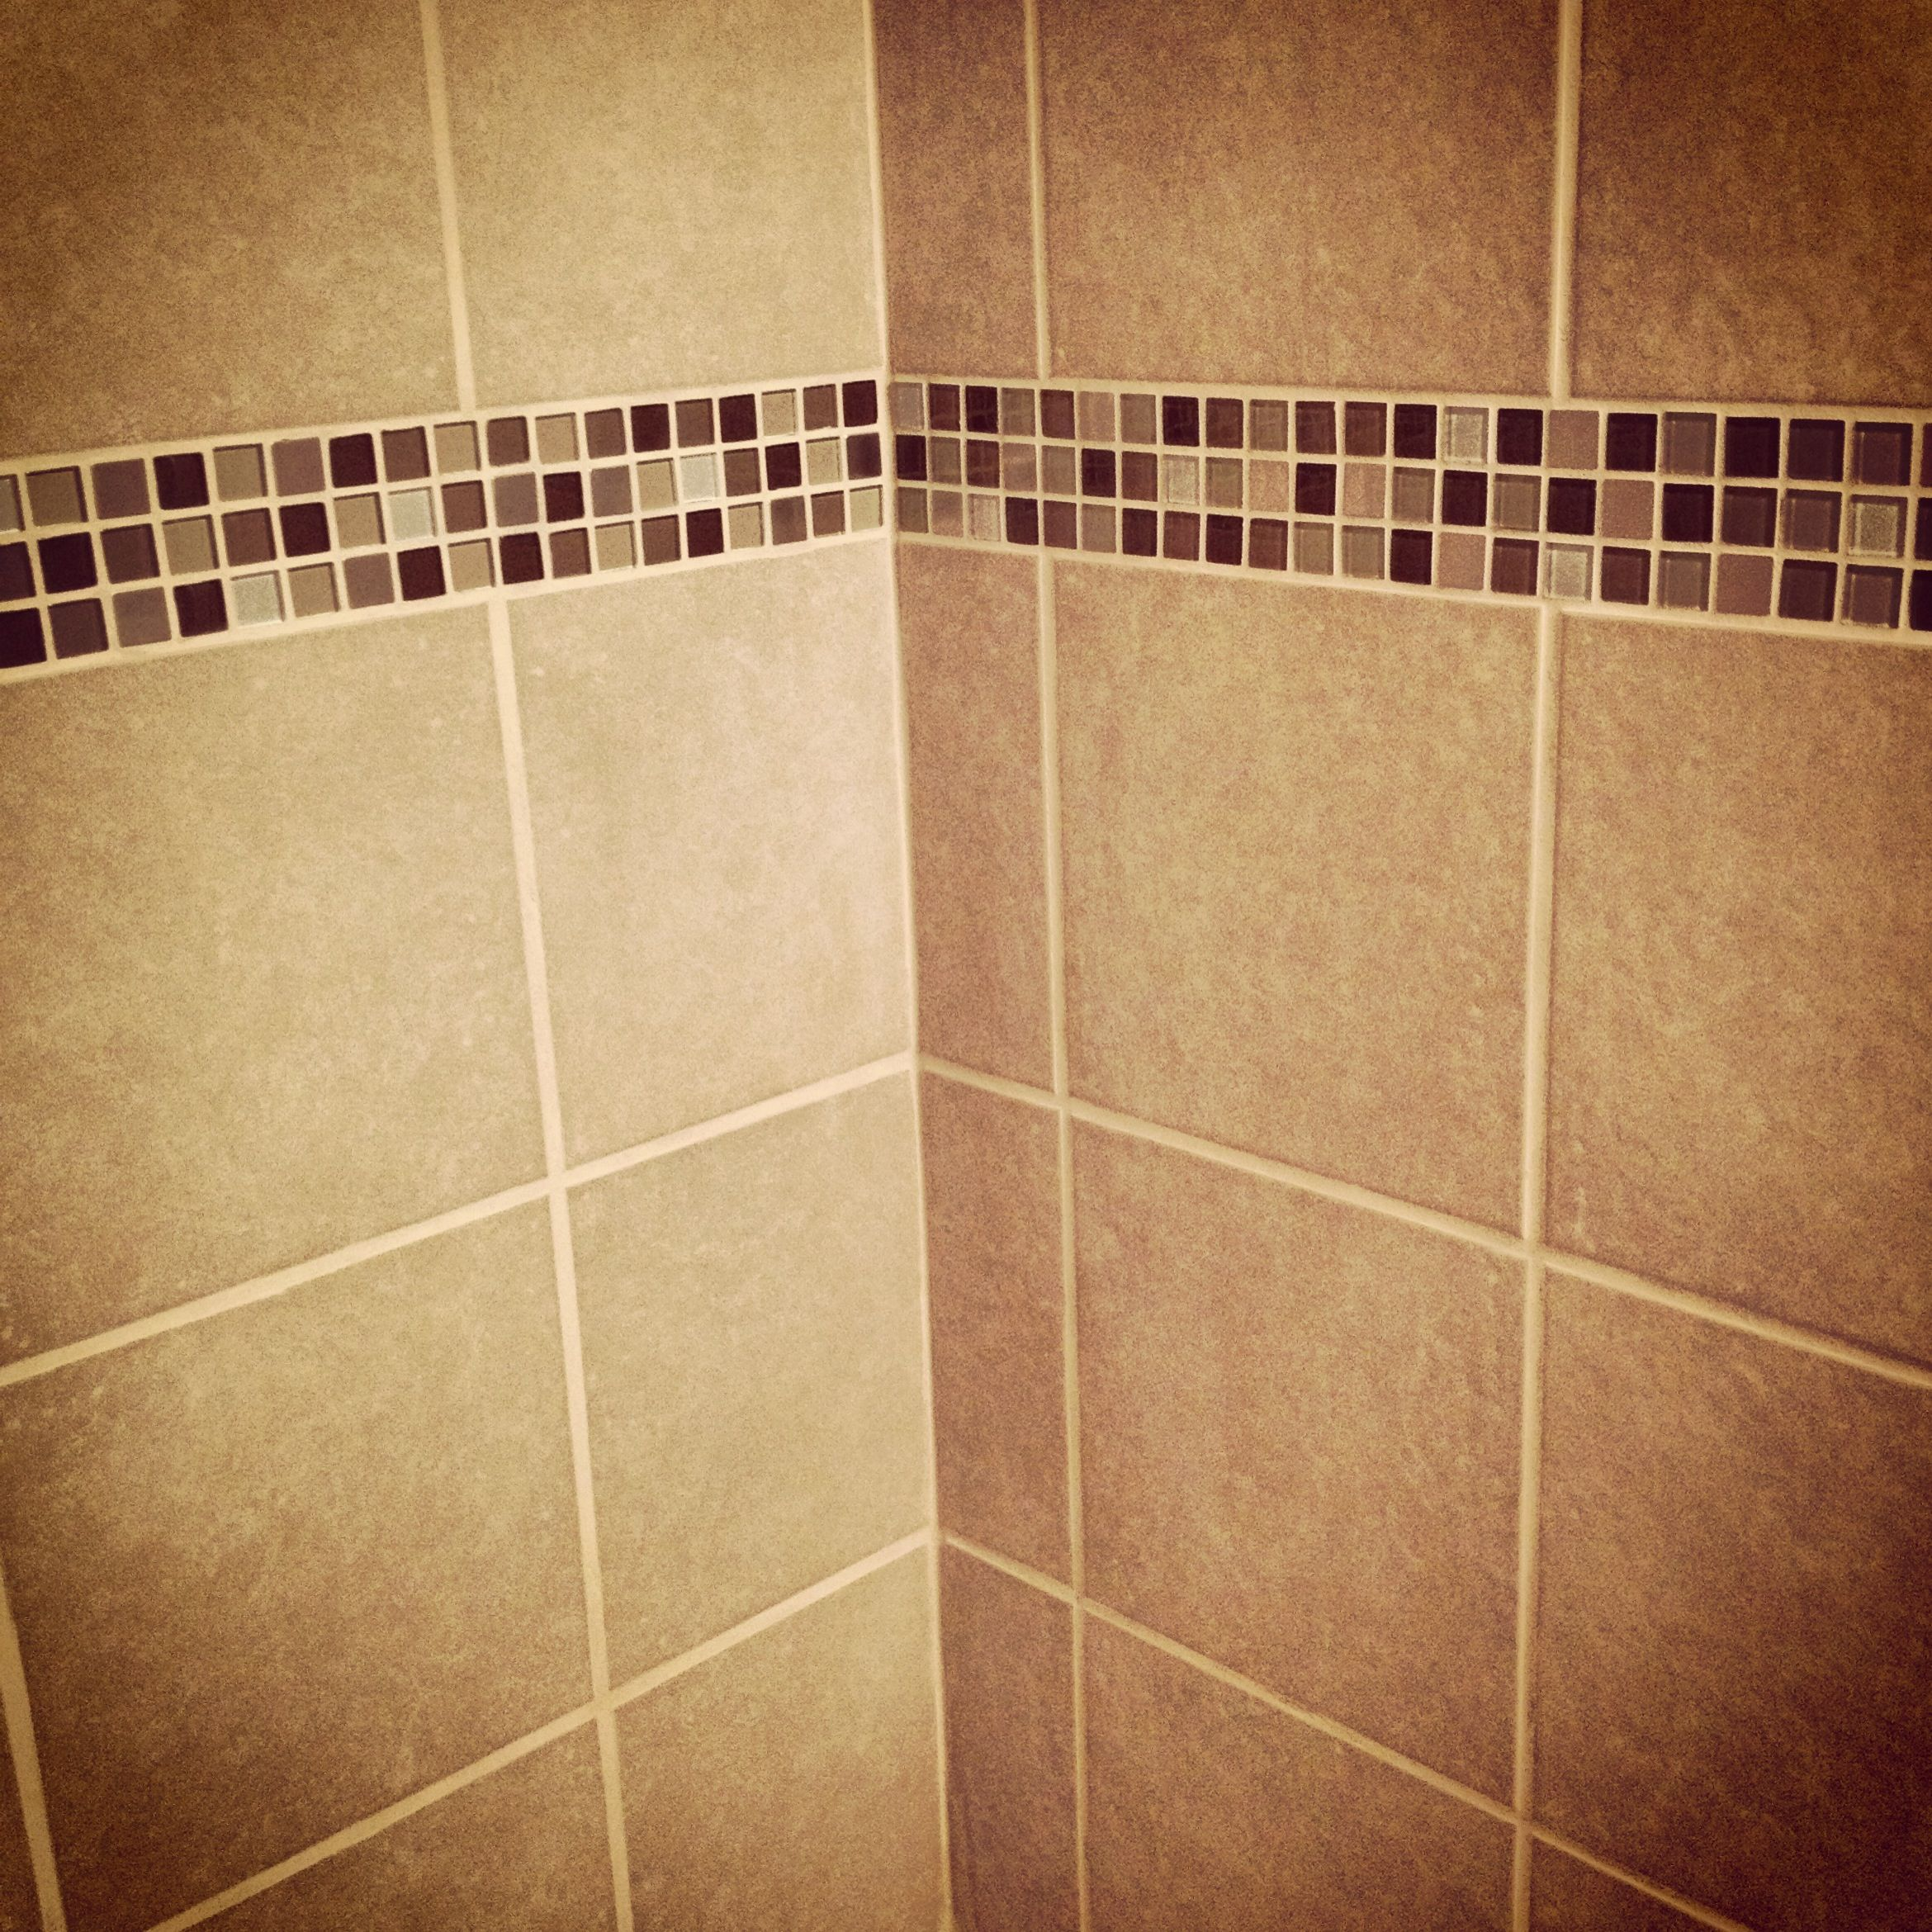 Bathroom wall tiles with colorful glass accents | Tile ideas ...